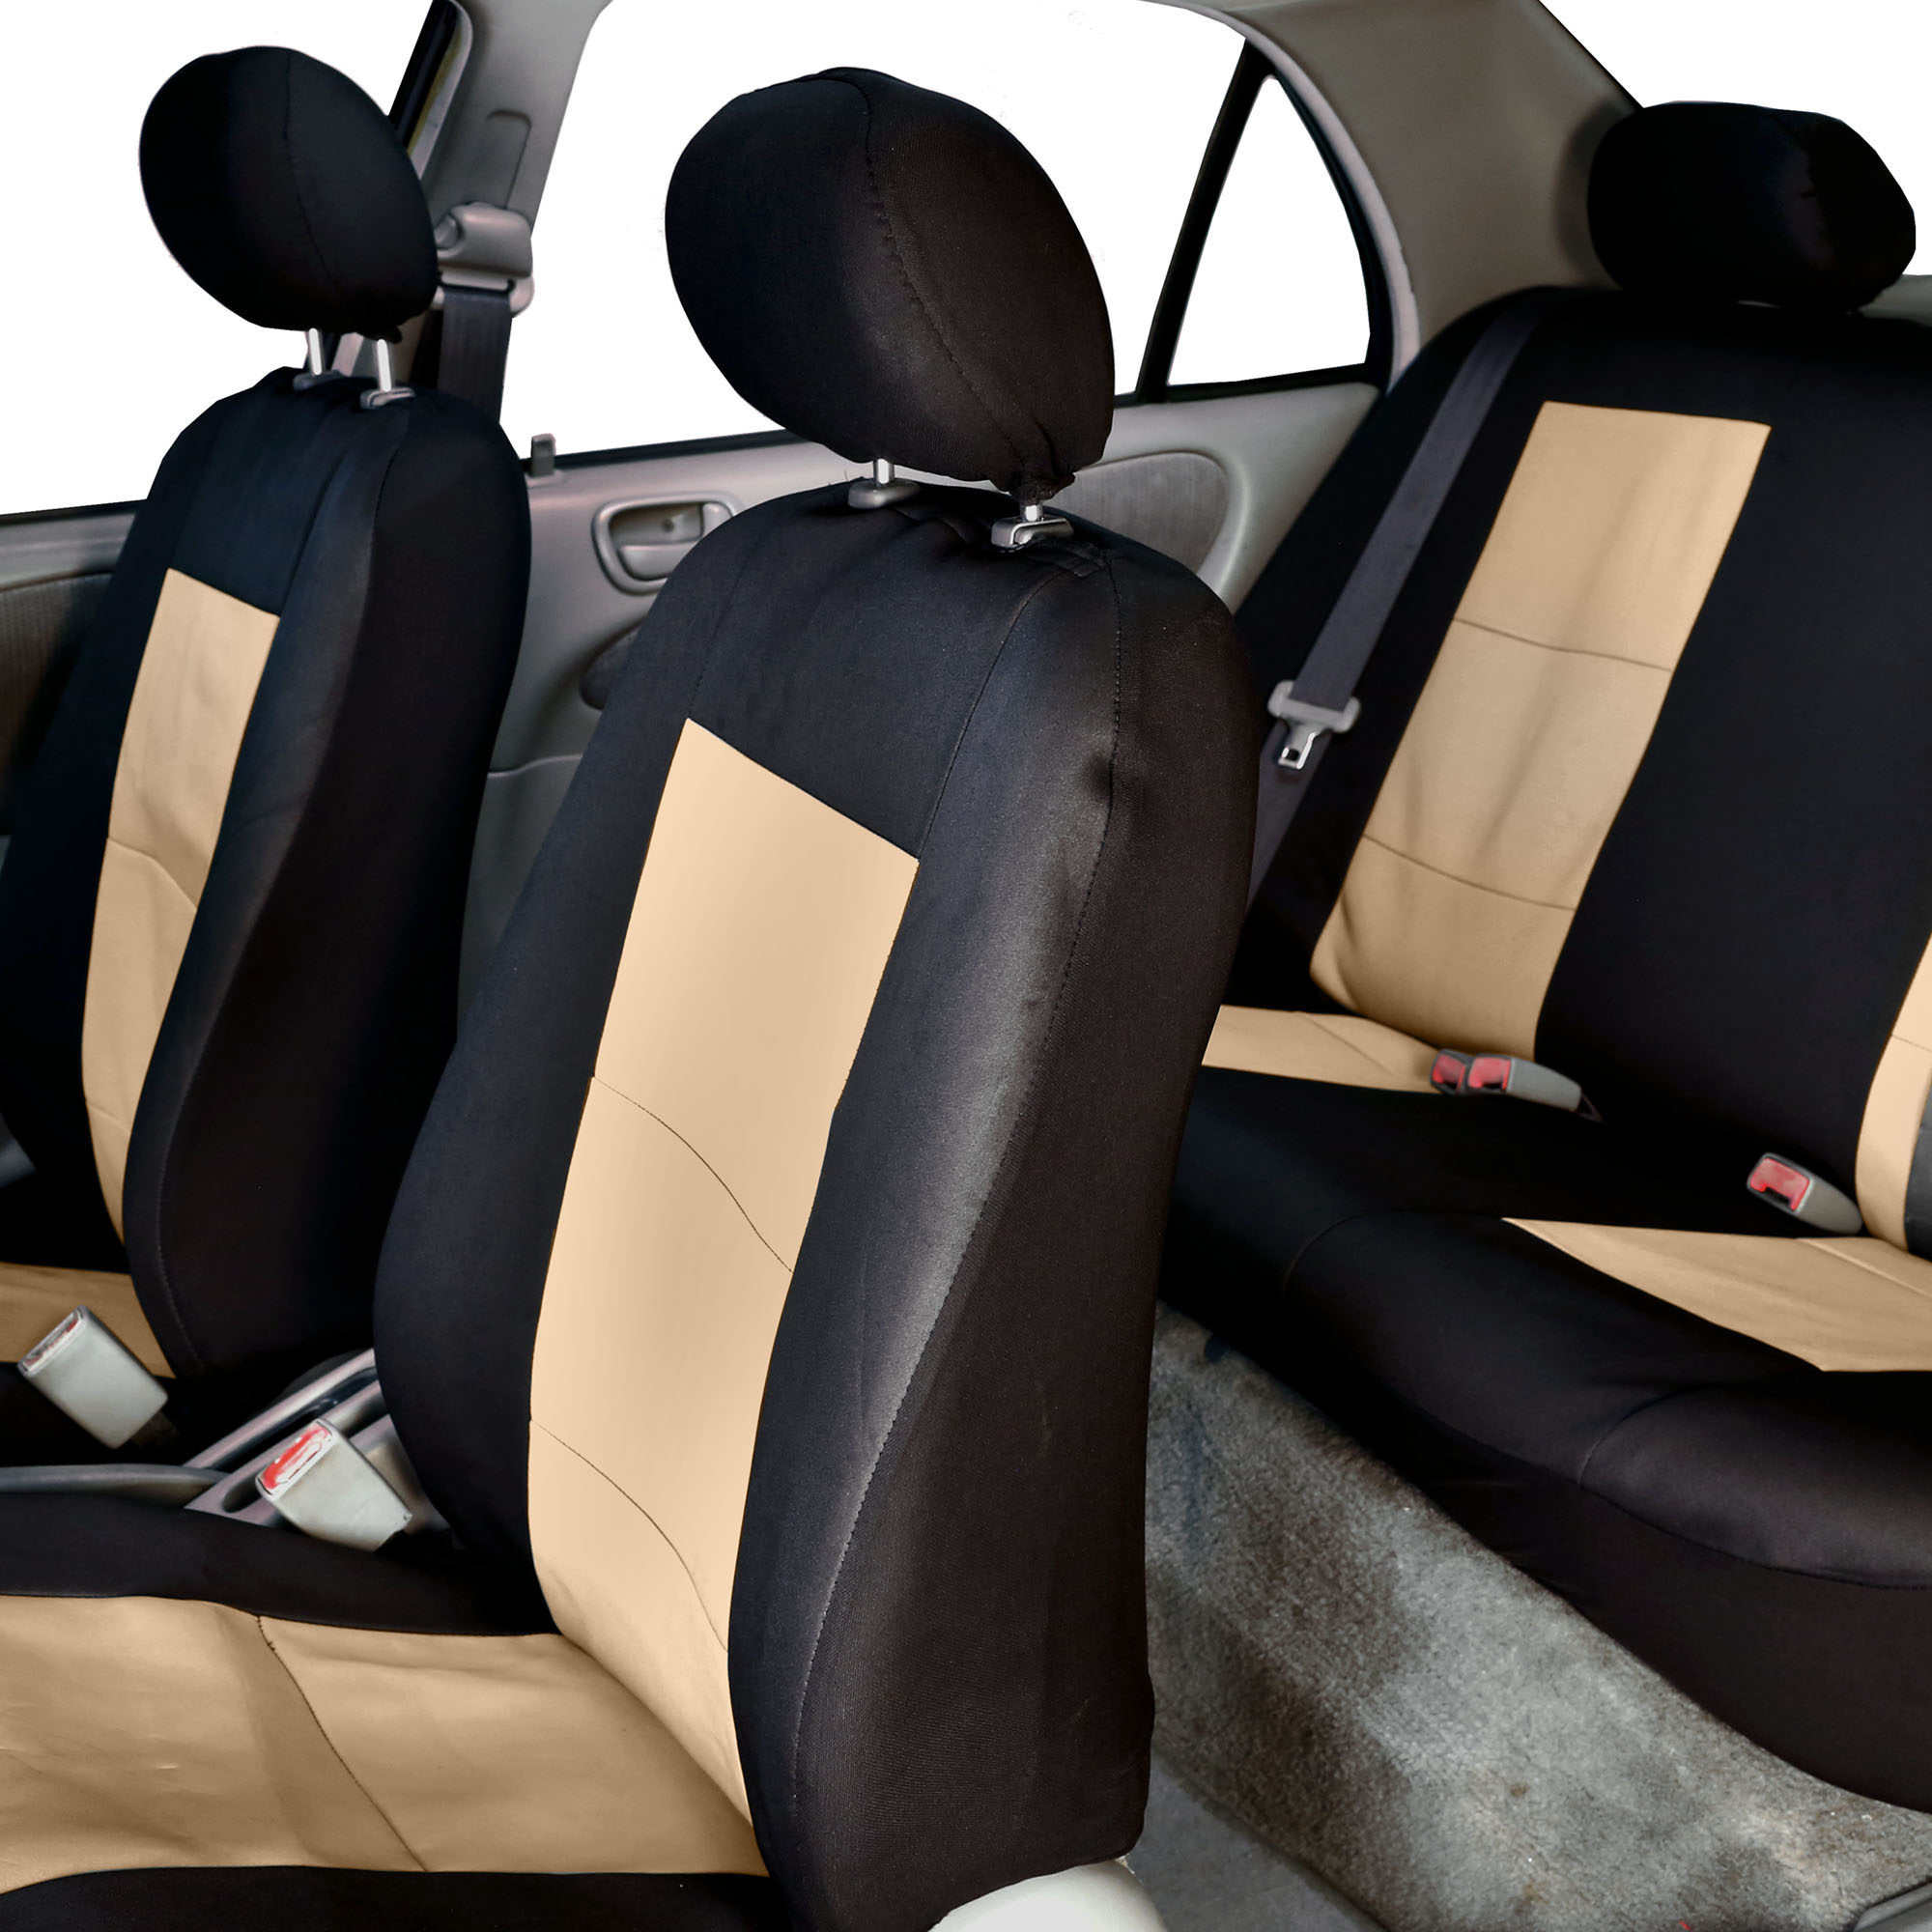 Seat Covers Eva Foam For Auto Combo With